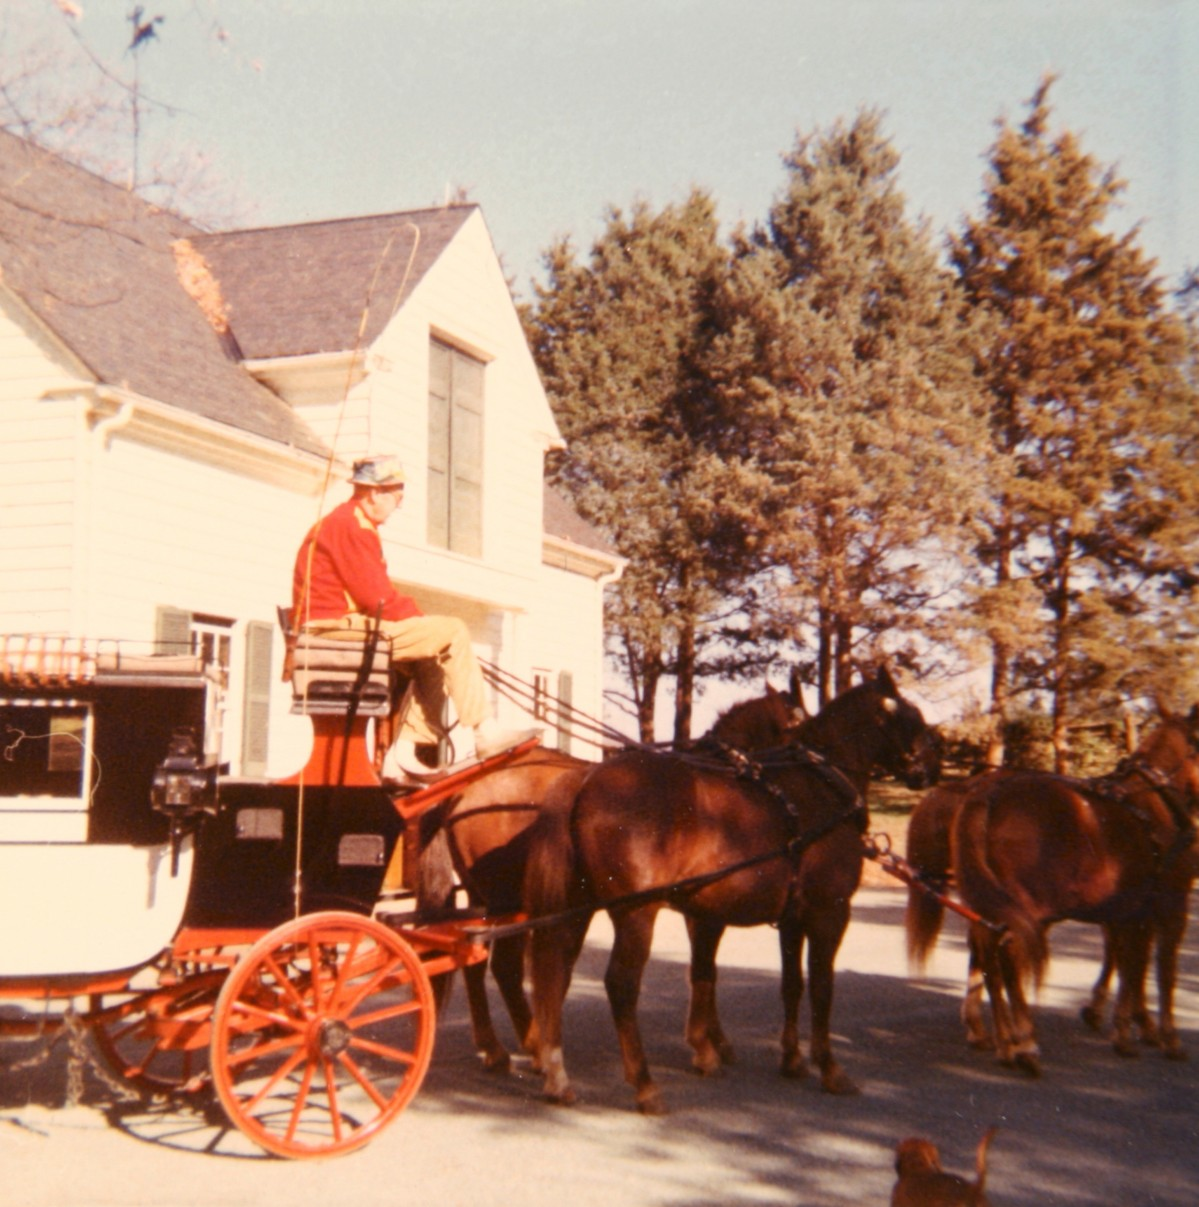 Vintage photograph of man and horse drawn carriage